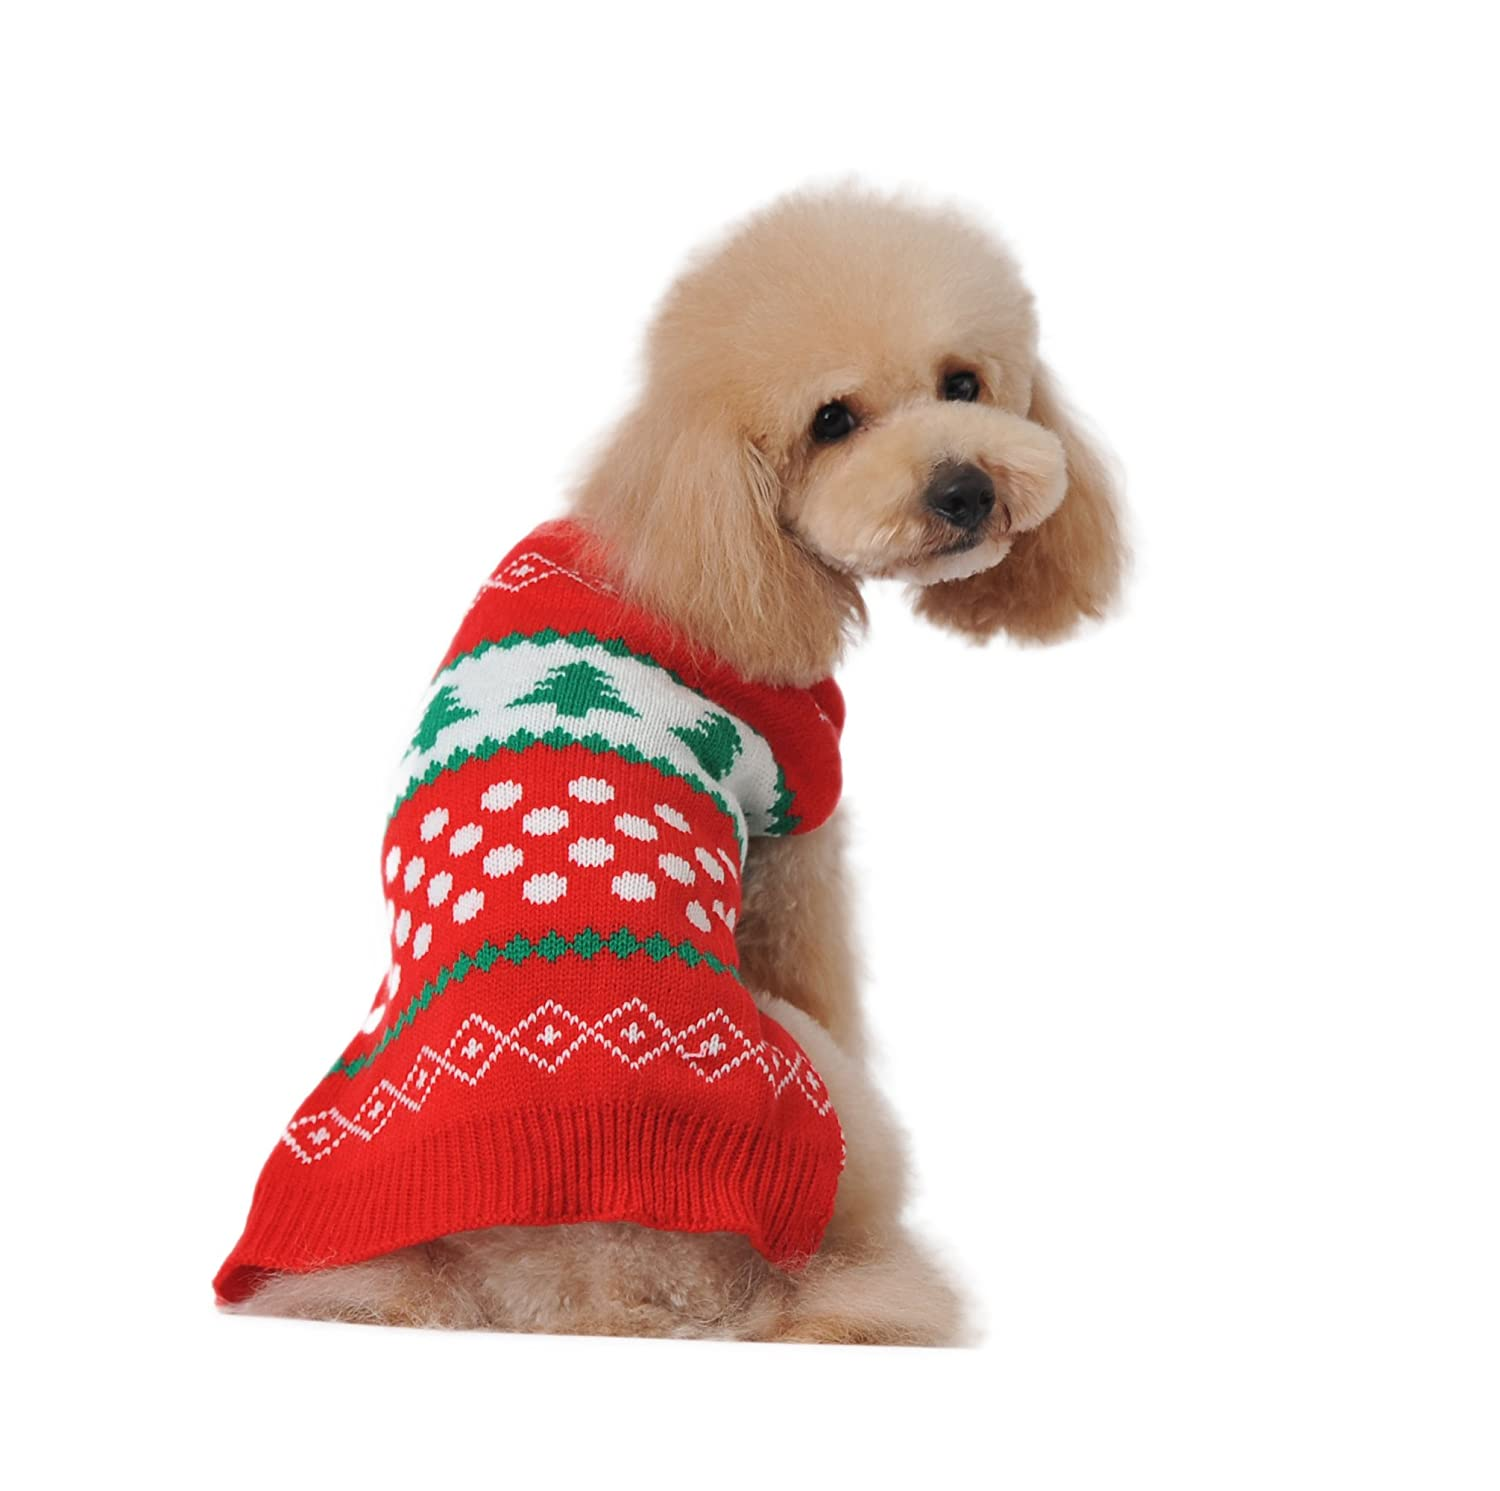 Amazoncom Dog Sweater For Cat Cute Red Small Puppies Teacup - 22 adorable animals wearing miniature sweaters